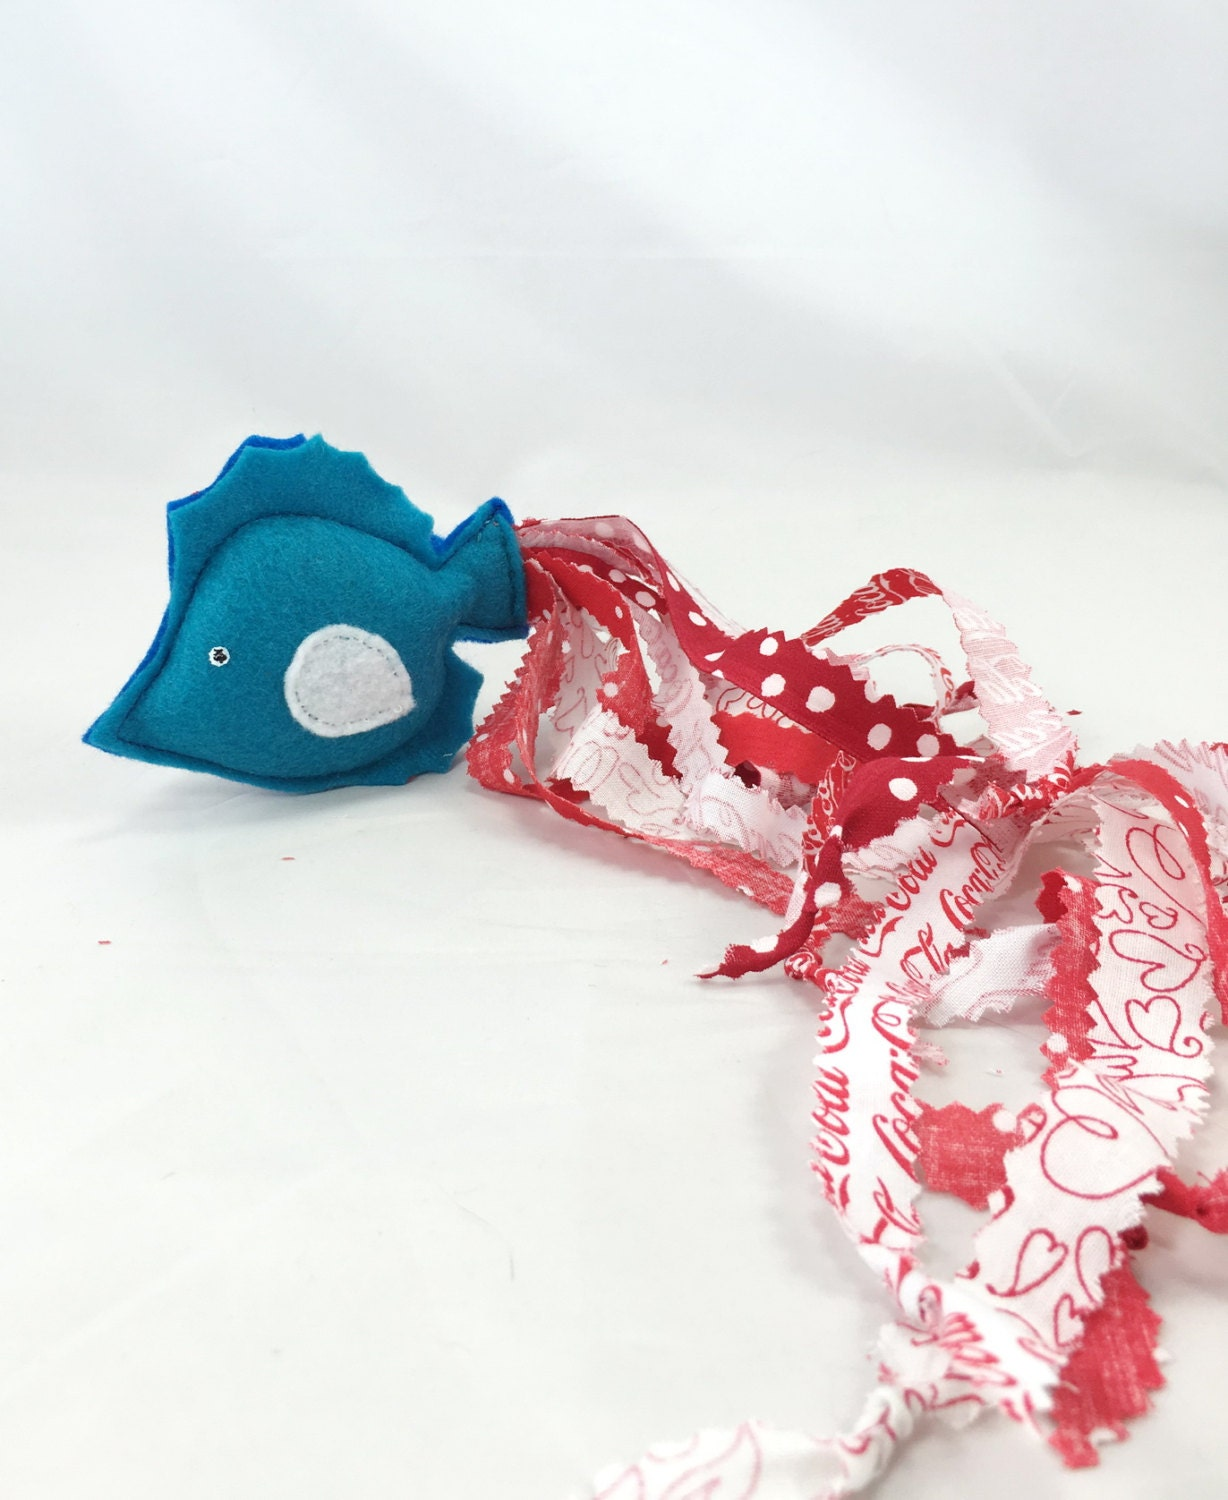 Fish cat toy unique fish plushie cat toy red white blue for Fish cat toy